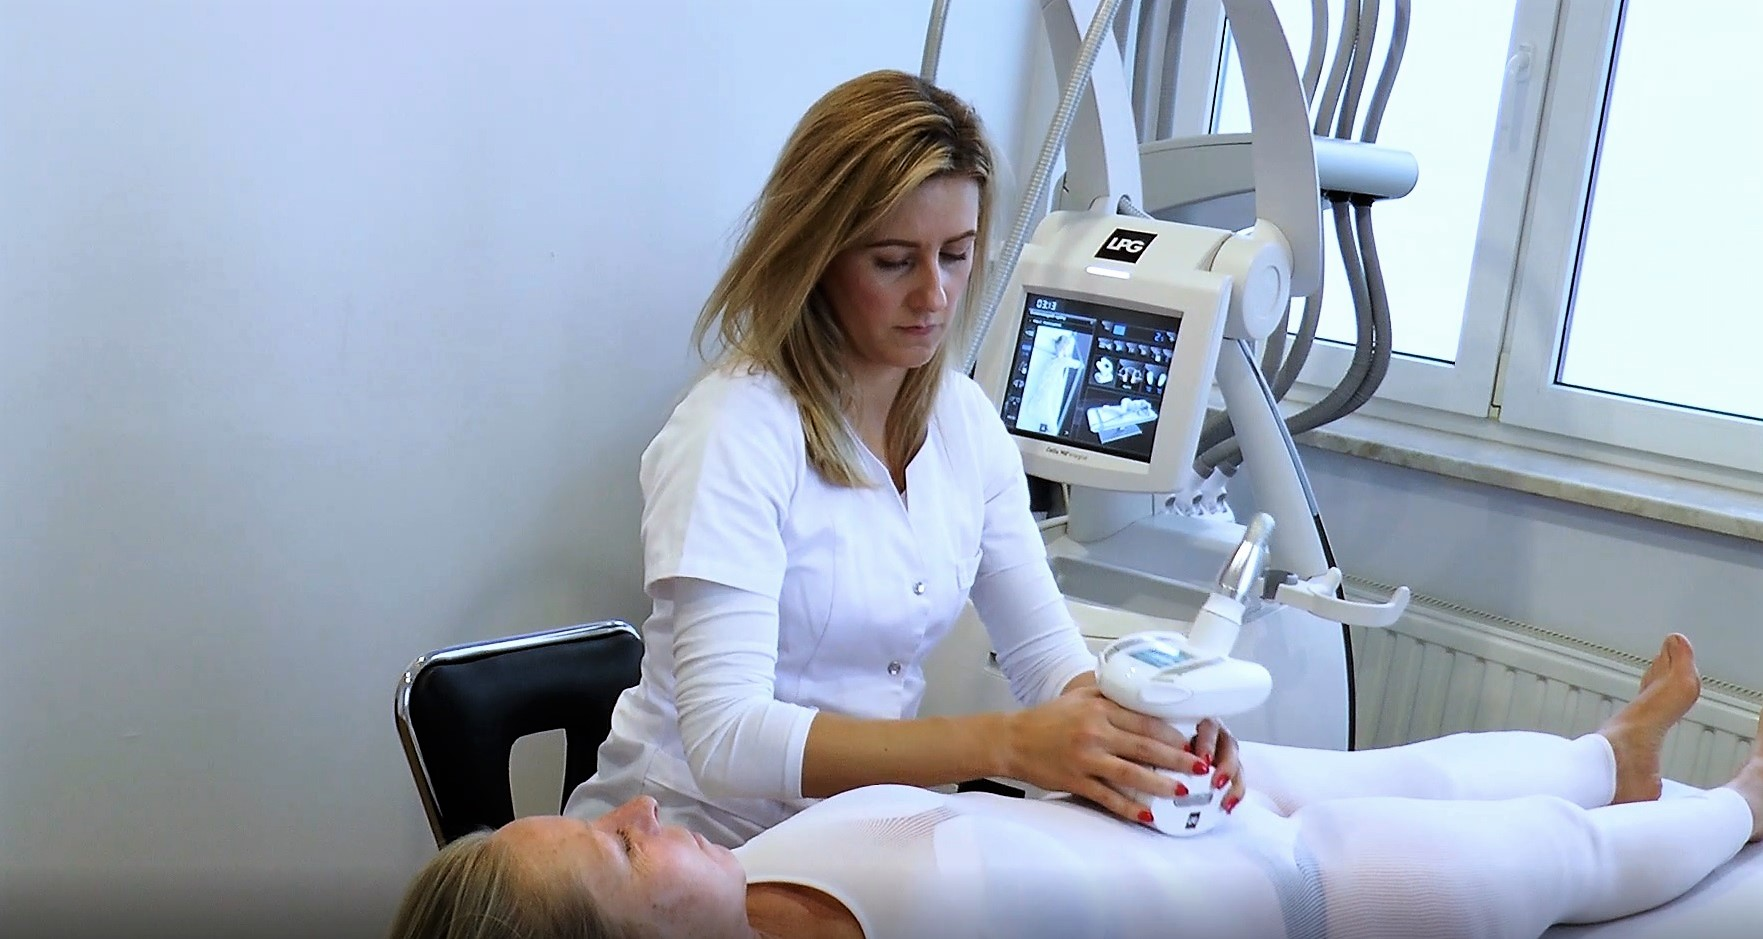 Dr. Kubik 2 - Medical Centre Dr Kubik - cutting-edge technology and continuous development of medical services